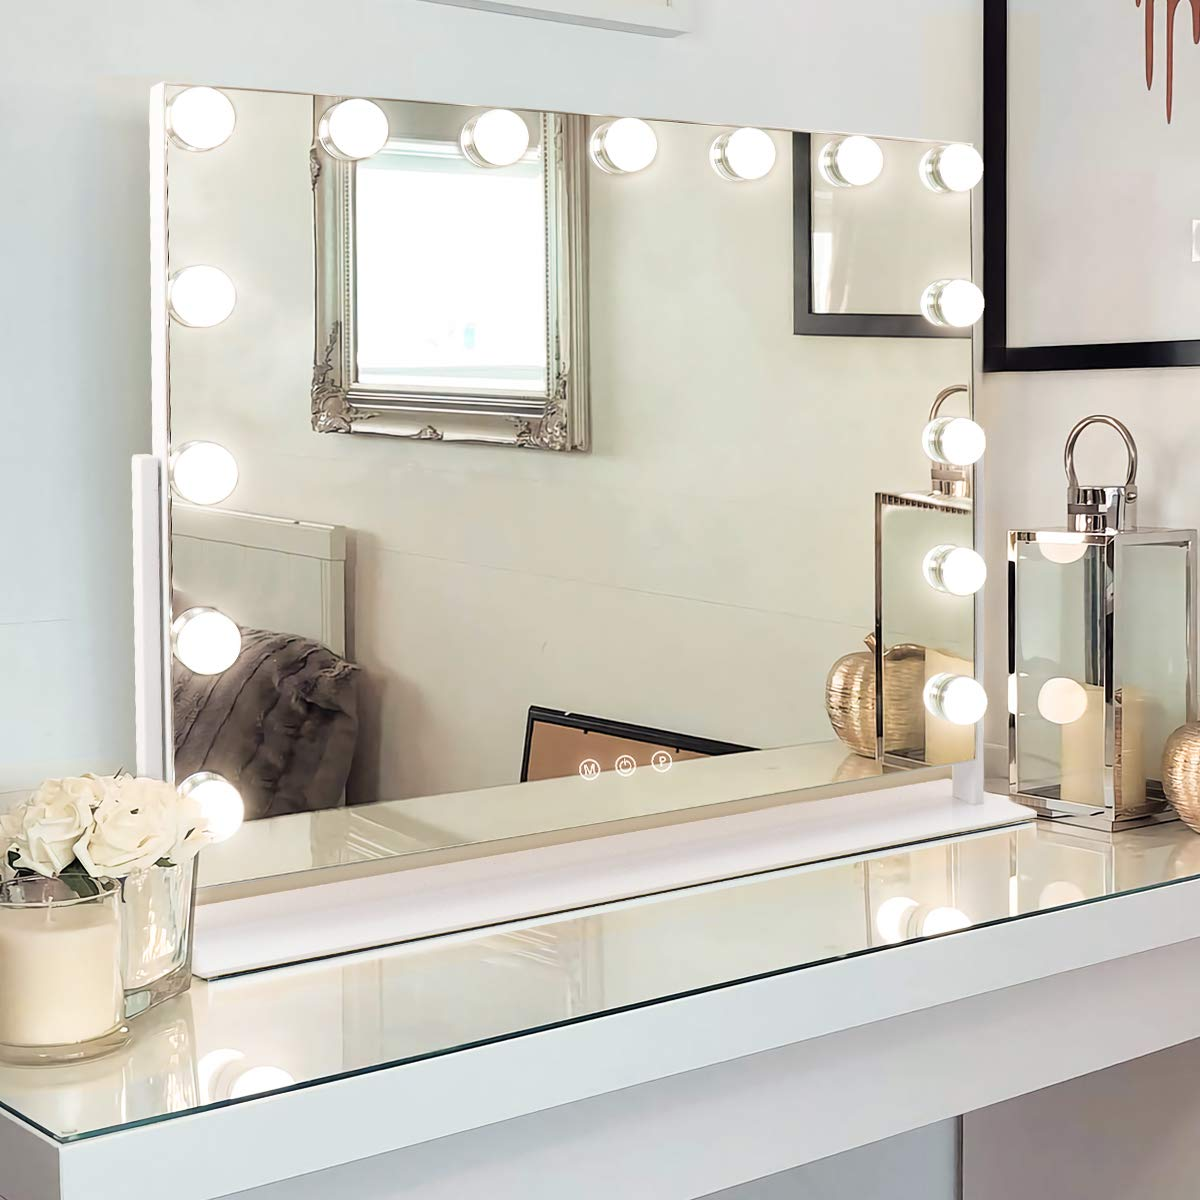 Misavanity Large Vanity Makeup Mirror with Lights,Hollywood Lighted Up Mirror with 10X Magnification and USB Charging Port 15 Dimmable LED Lights for Dressing Room Bedroom Tabletop 360 Degree Rotating